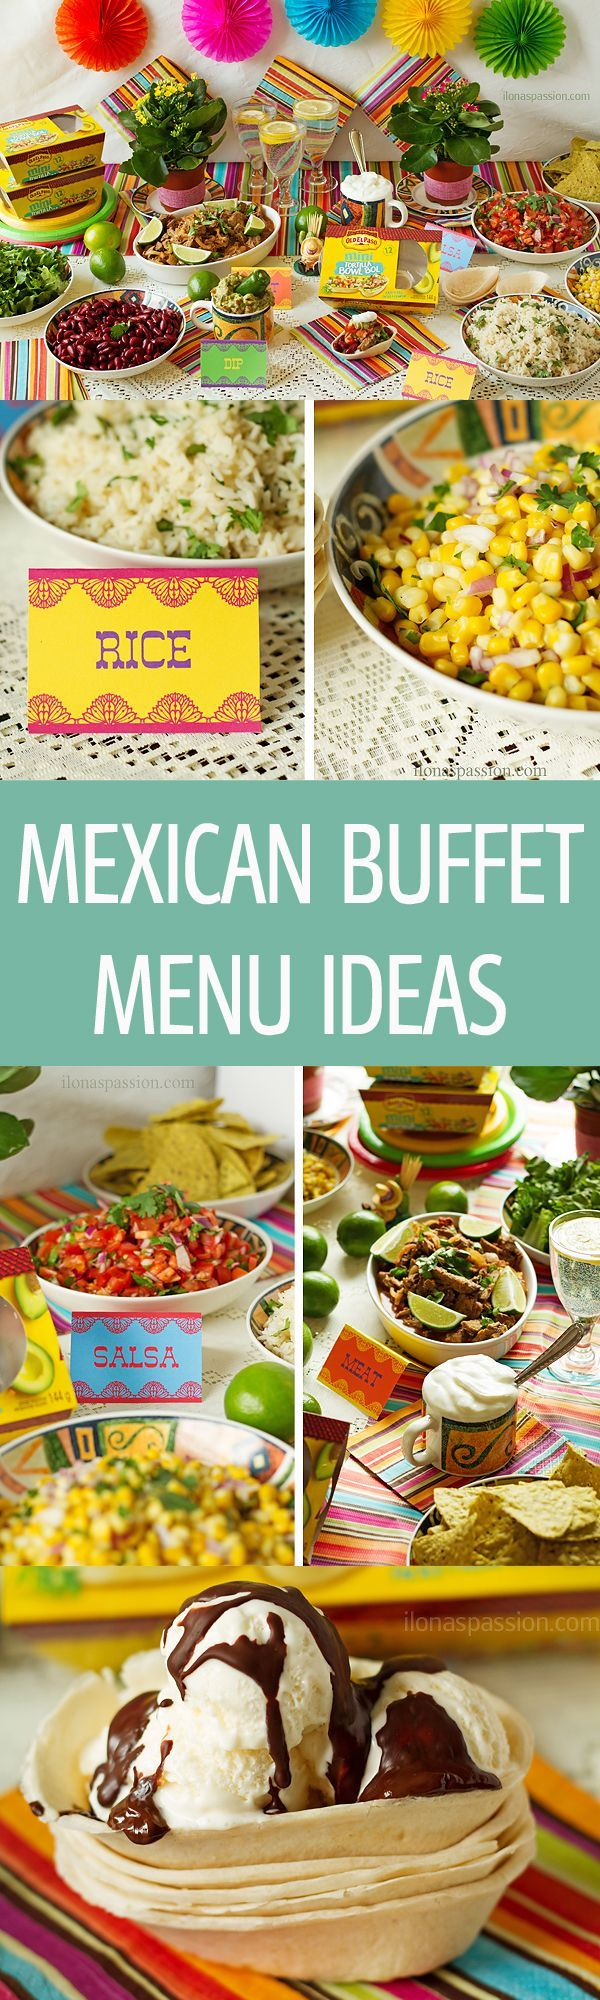 mexican buffet menu ideas | recipe | food - mexican & spanish